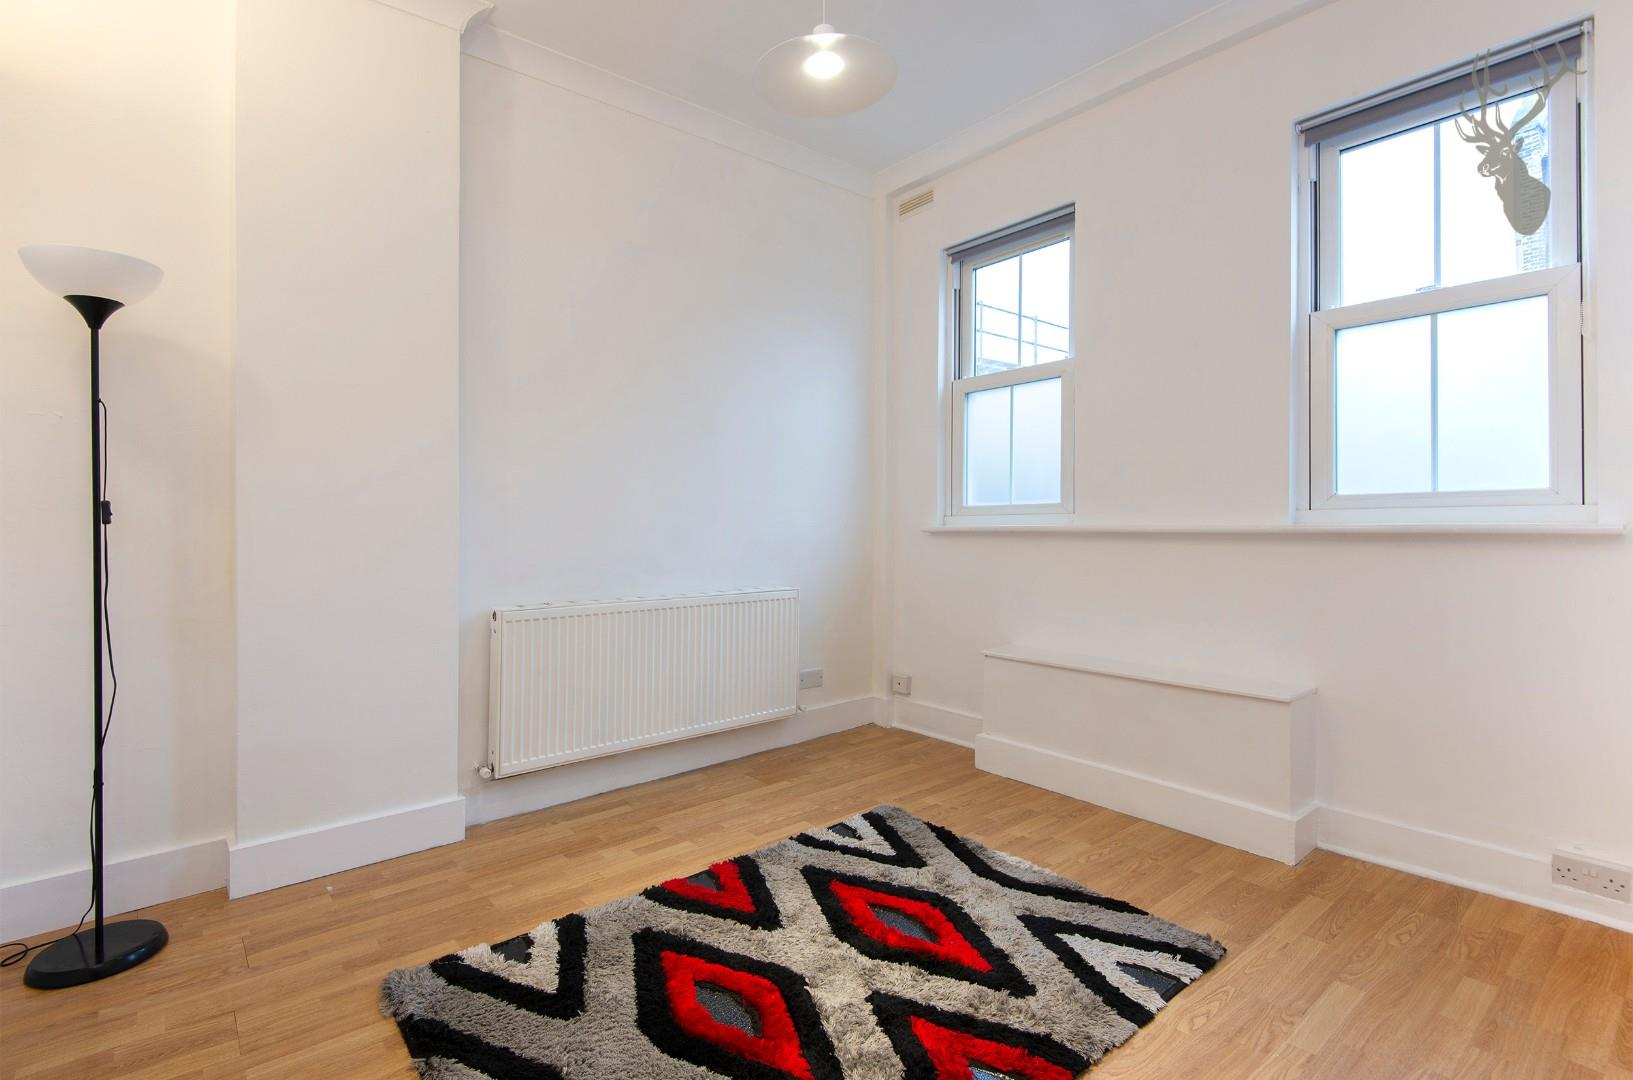 13a Middleton Road E8 RECEPTION img 1.jpg